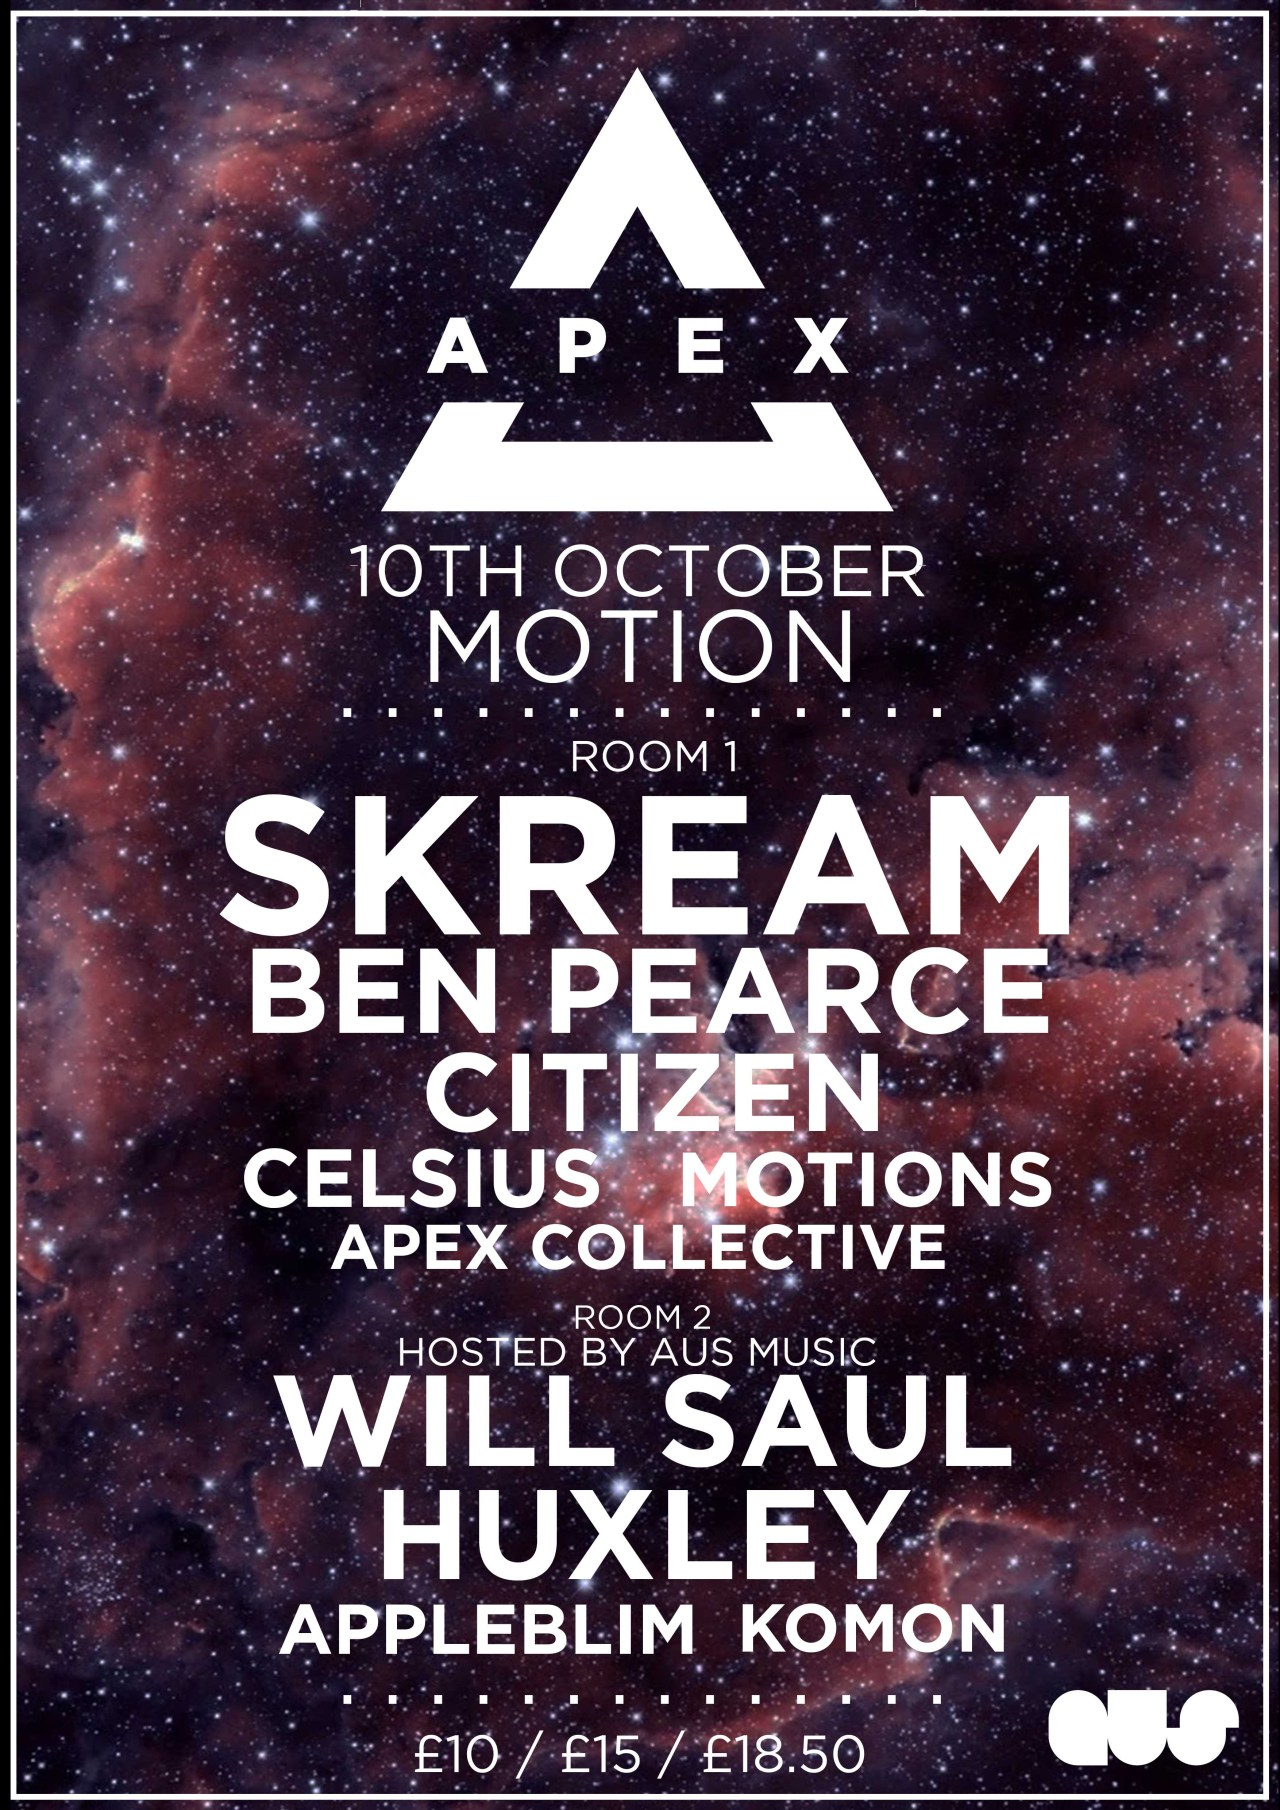 Nearly a 1000 tickets sold already for our In:Motion presents Apex w/ Skream, Ben Pearce, Huxley & more, this will sell out before so ensure you don't miss out!Final release tickets - https://www.eventbrite.co.uk/e/inmotion-presents-apex-tickets-12428561161